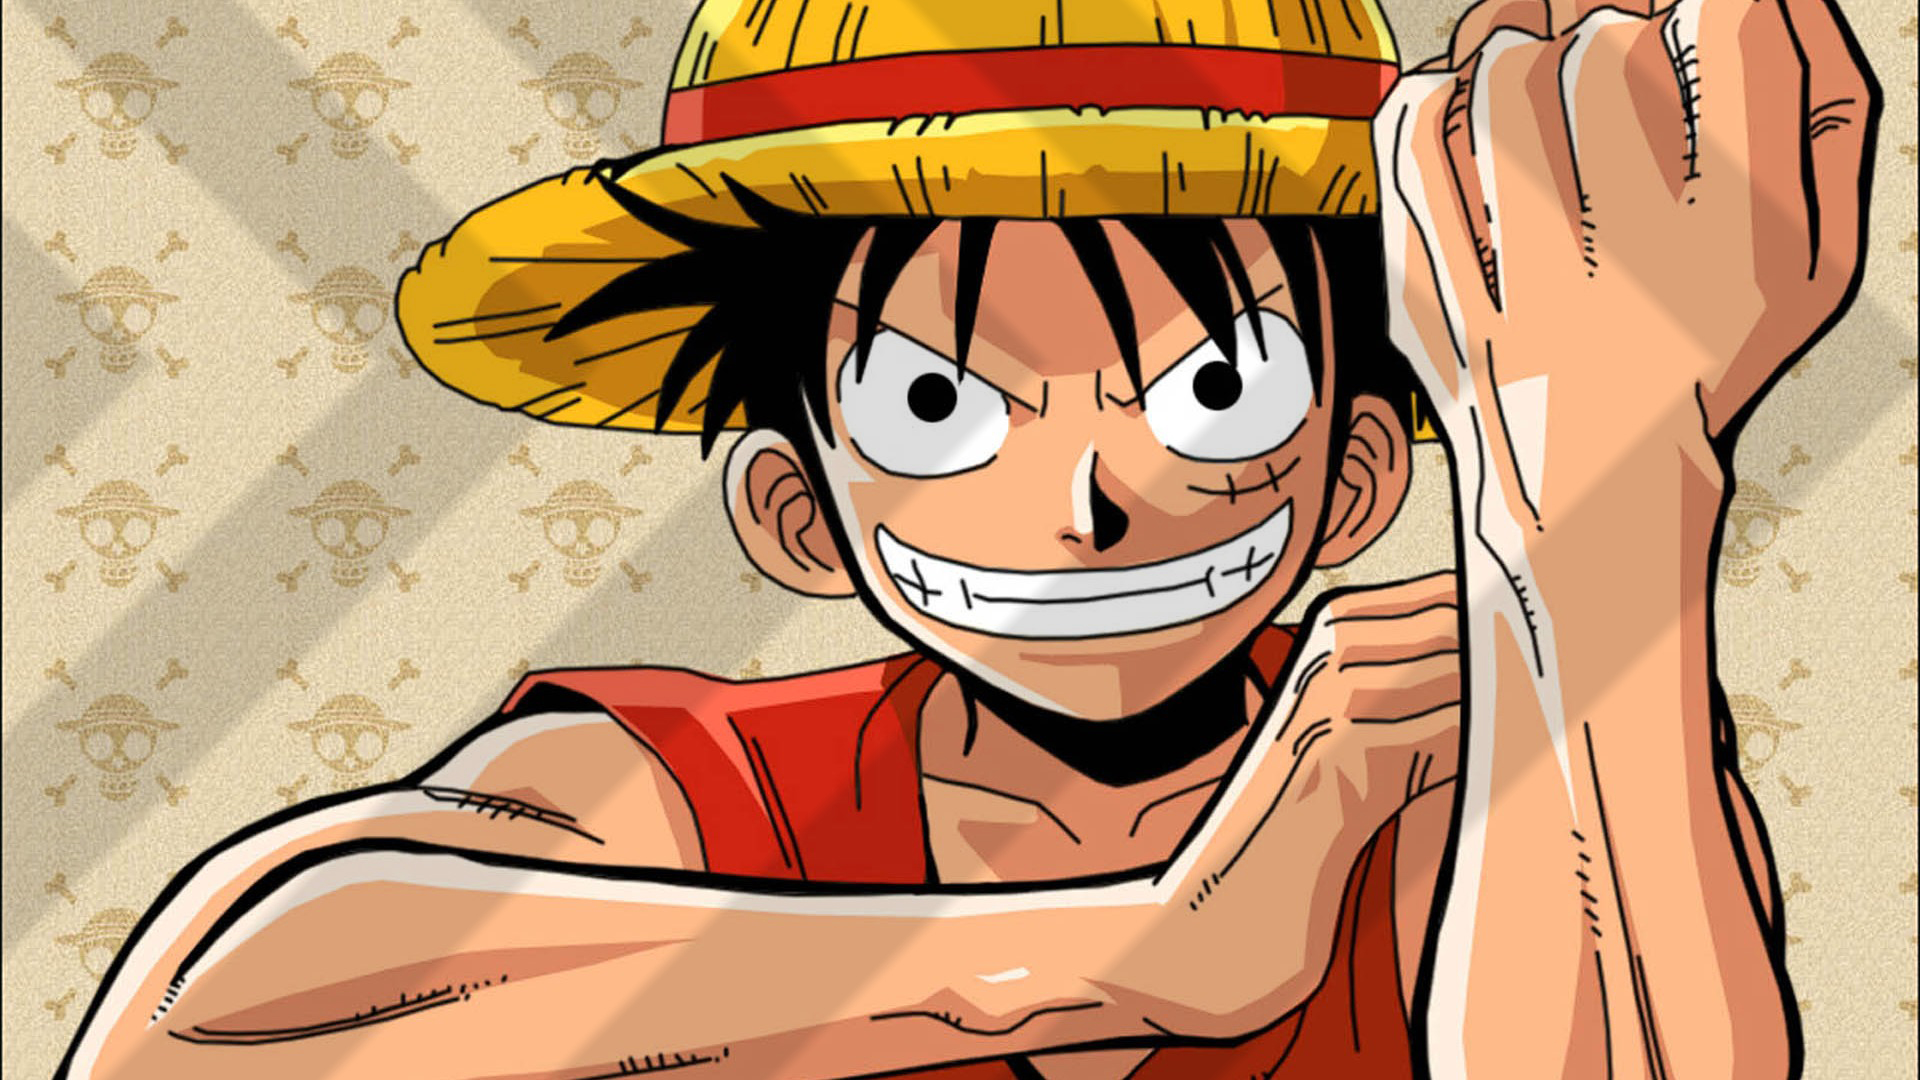 Free Download Download One Piece Luffy Hd Wallpaper Hd Wallpaper 1920x1080 For Your Desktop Mobile Tablet Explore 76 One Piece Wallpaper Luffy One Piece Wallpapers One Piece Wallpaper 1366x768